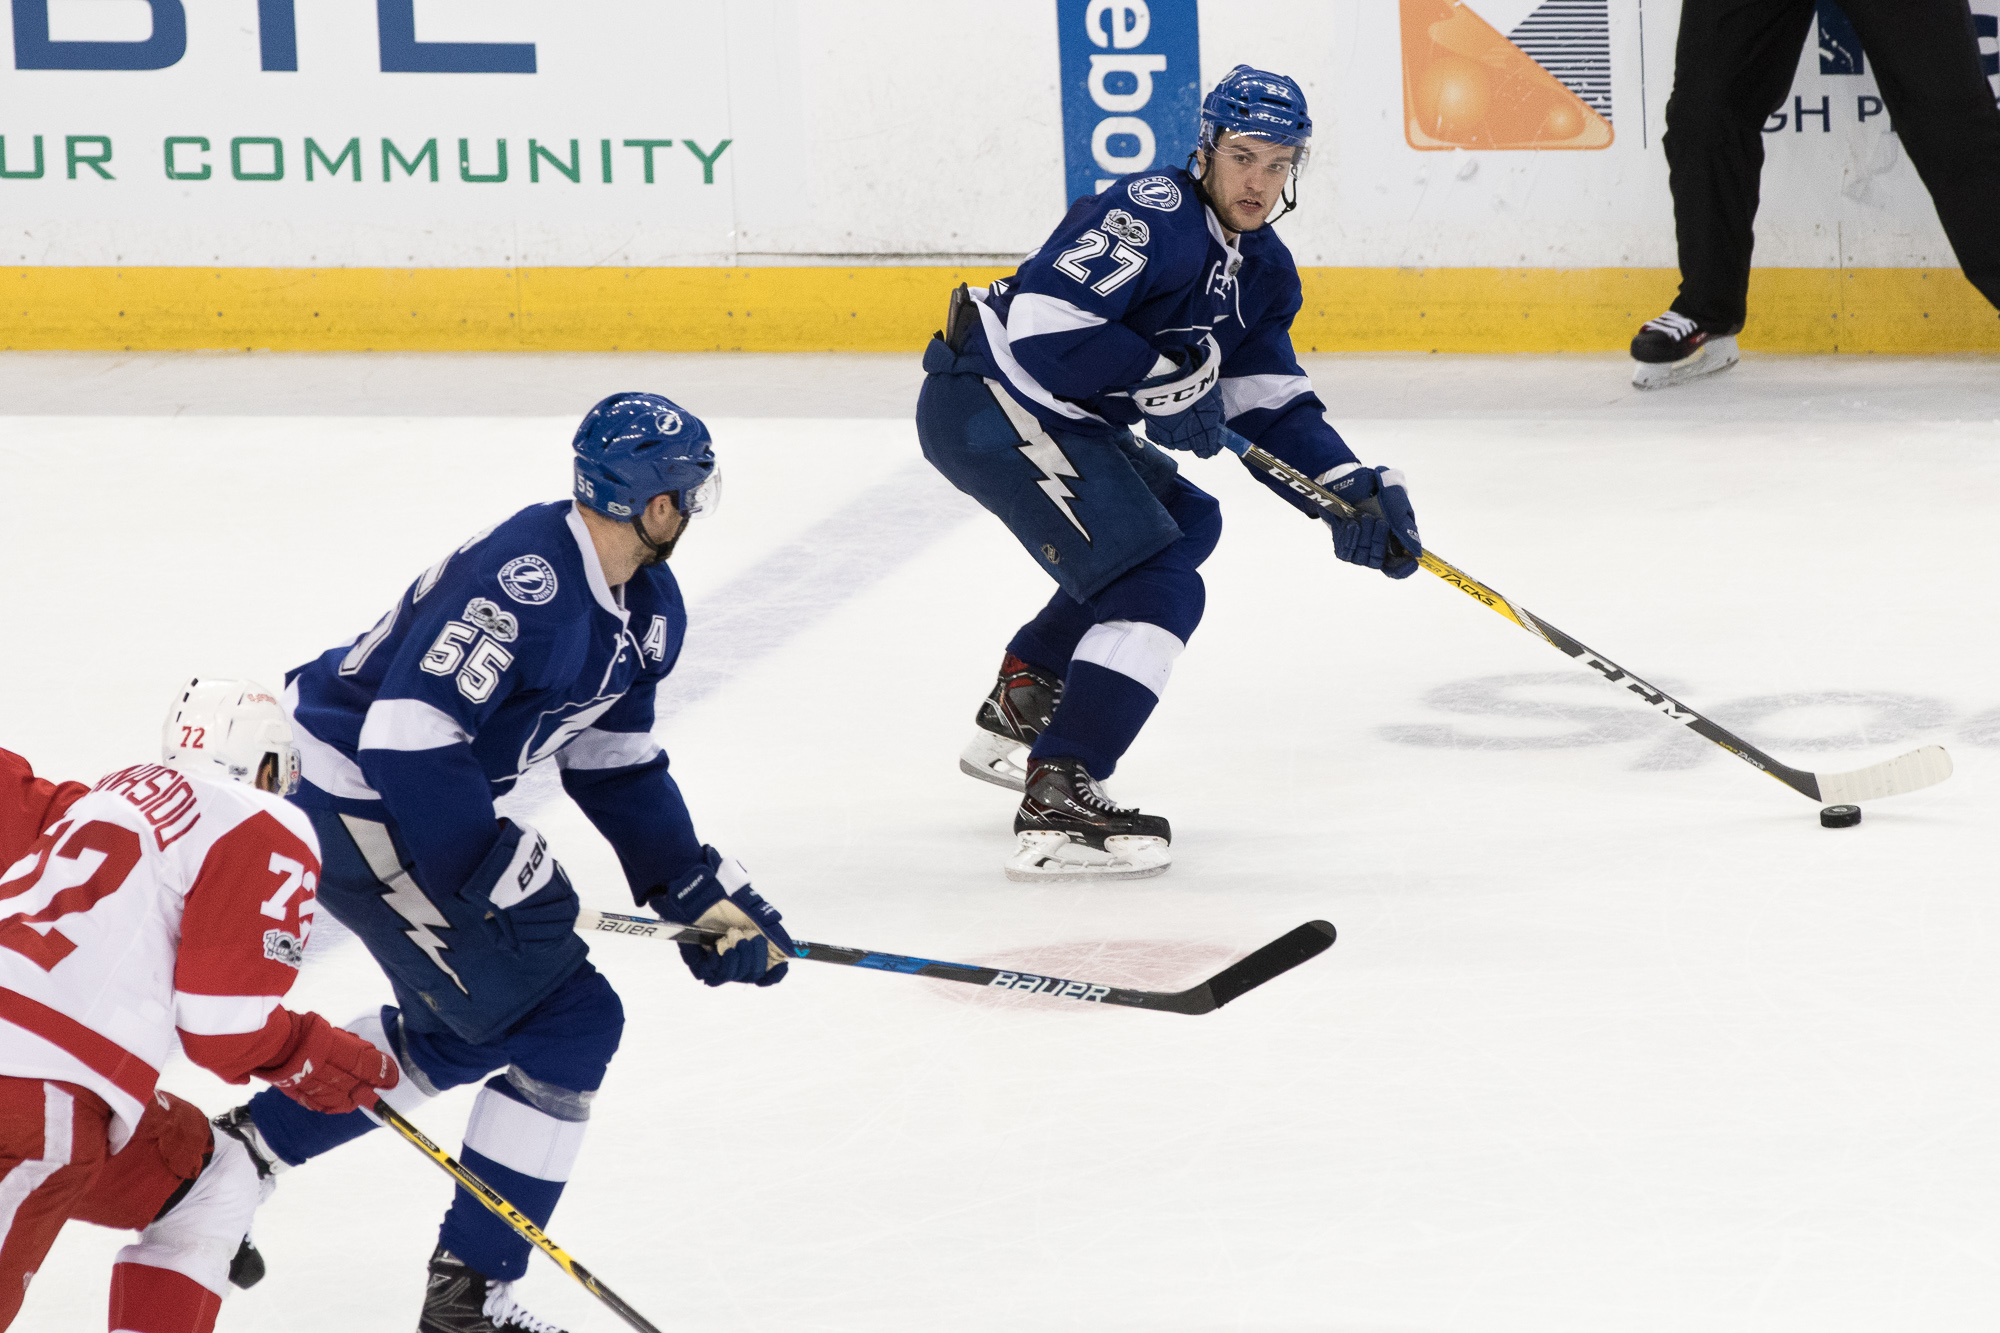 Jonathan Drouin Looks to make a pass to Coburn./Steven Muncie